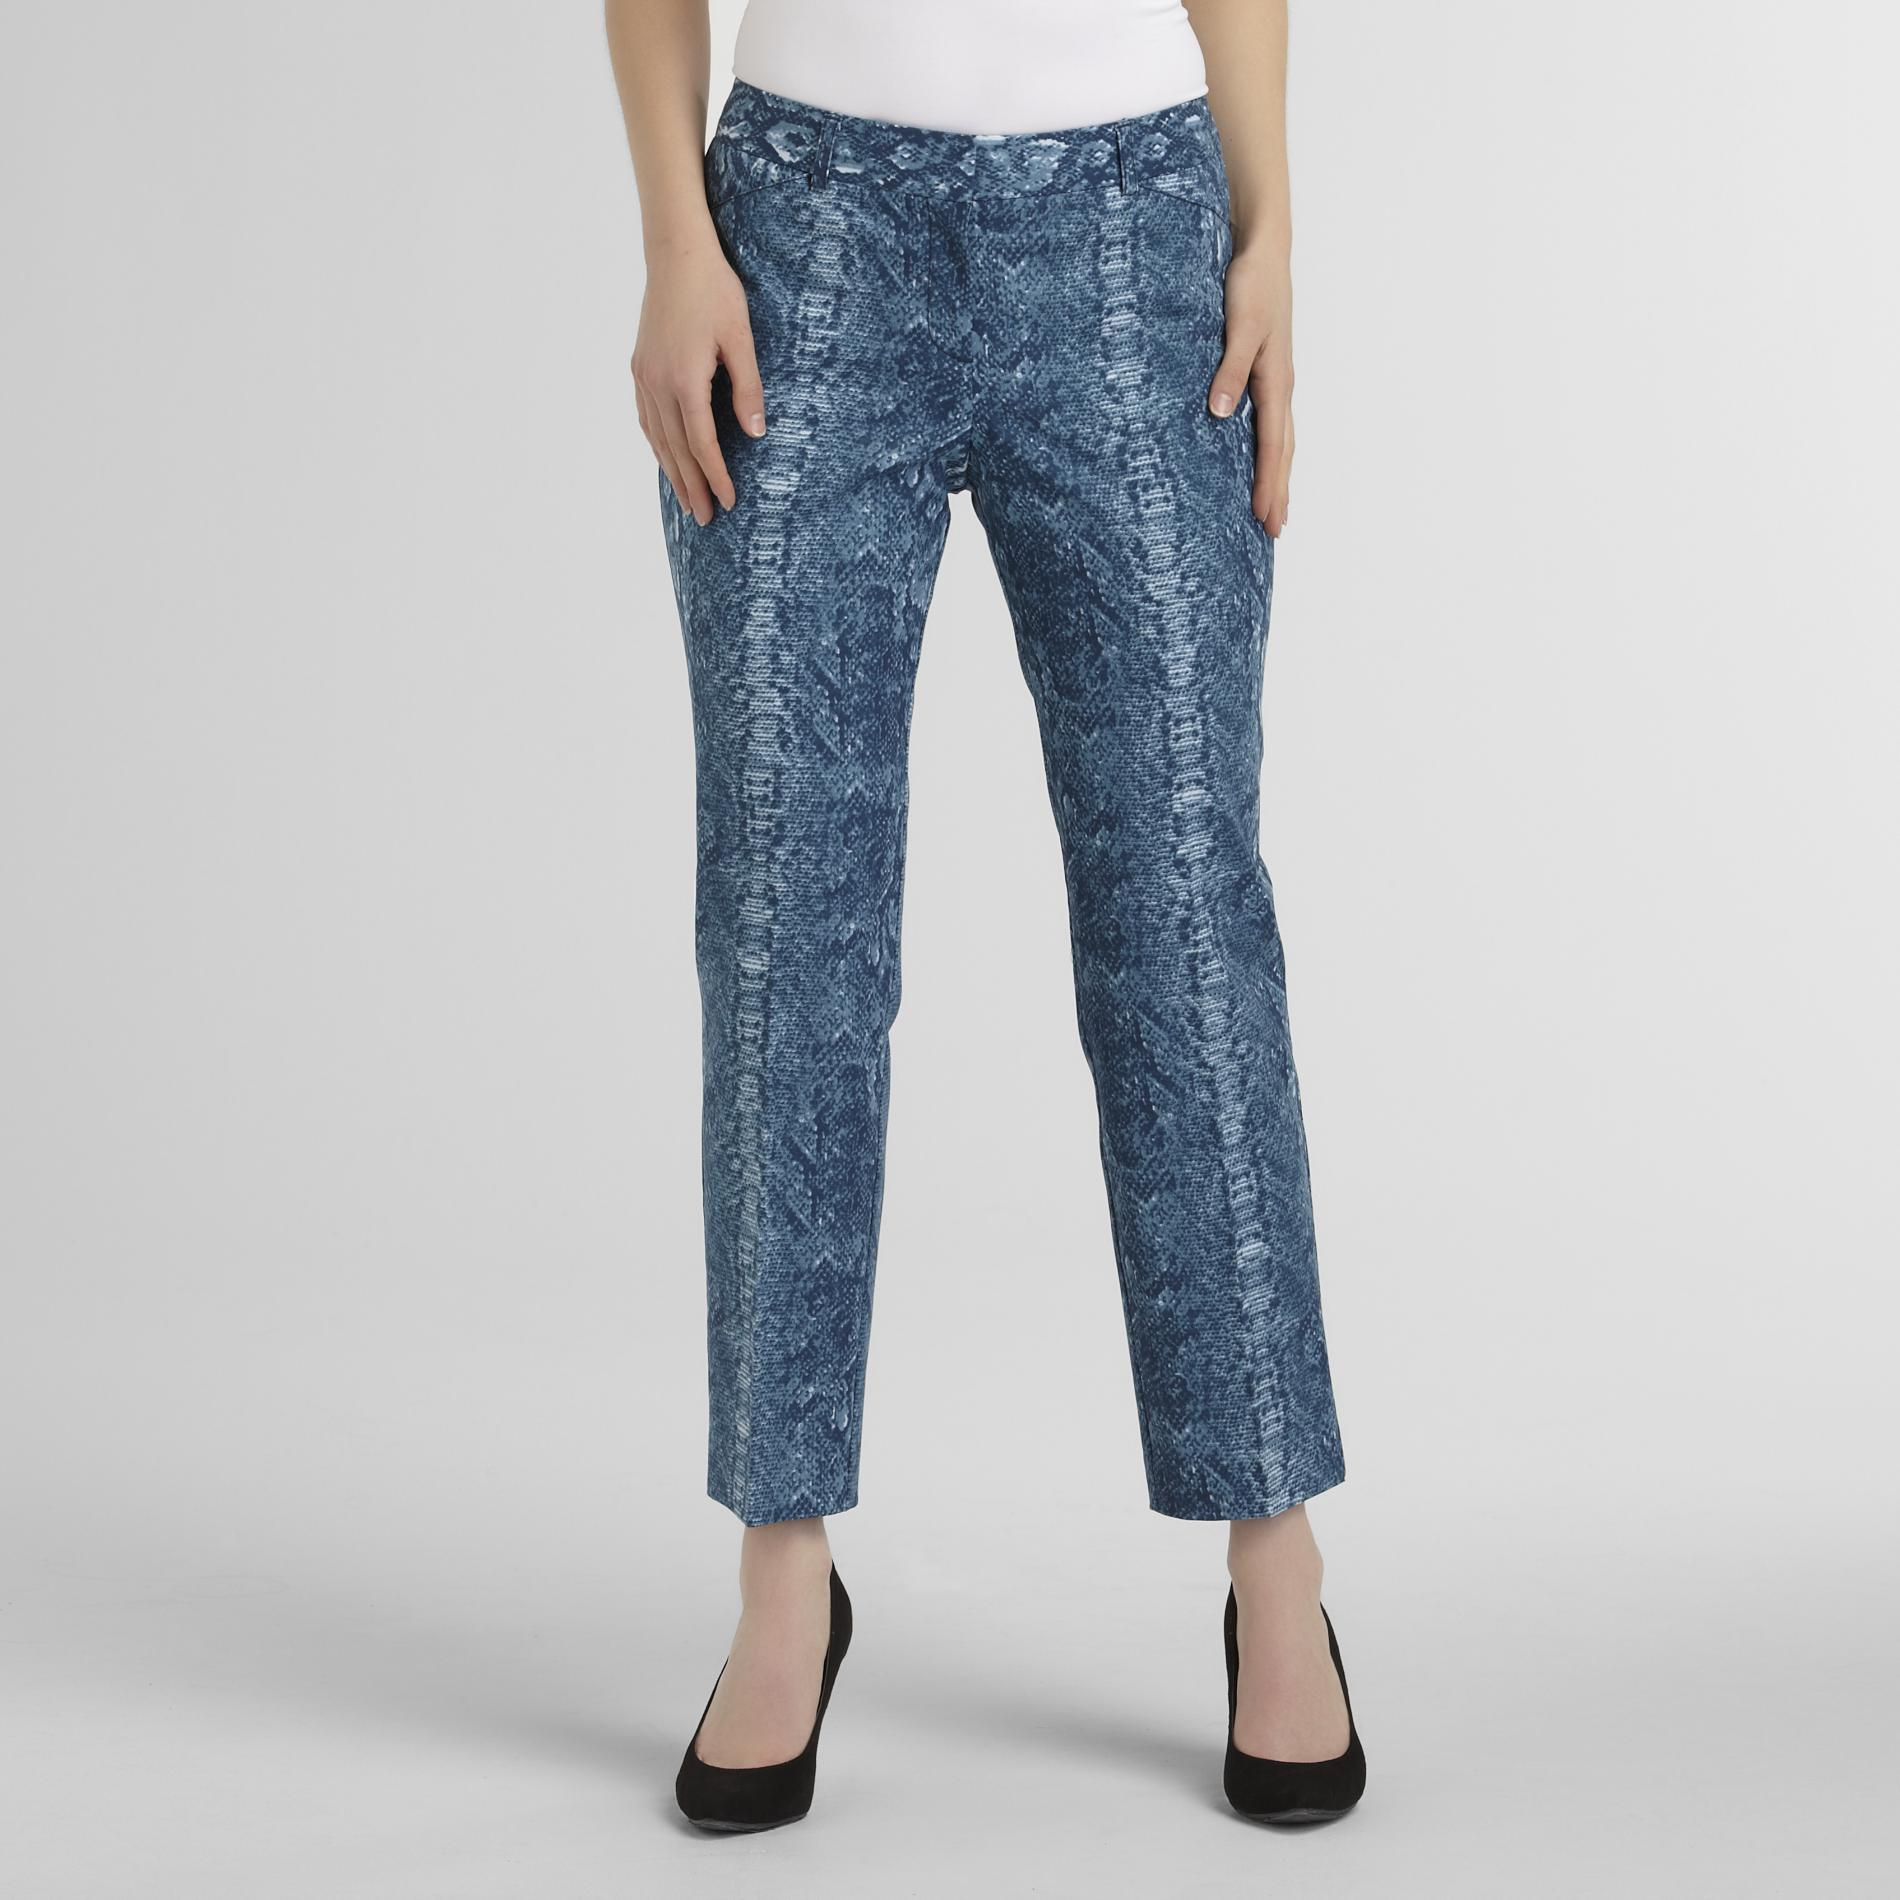 Larry Levine Women's Printed Skinny Leg Ankle Pants - Snakeskin at Sears.com